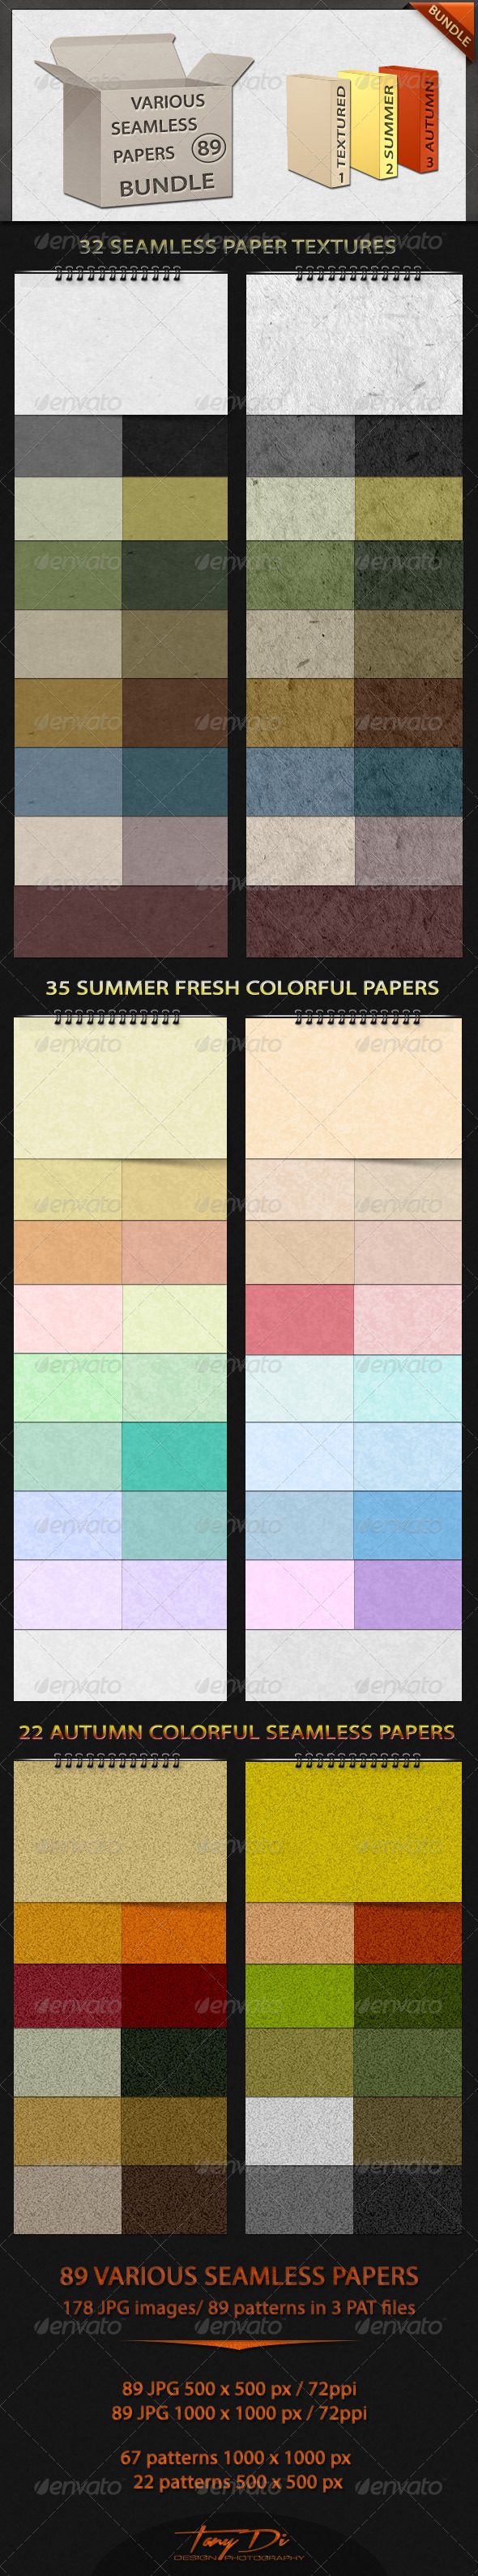 GraphicRiver Various Seamless Papers Bundle 4555284